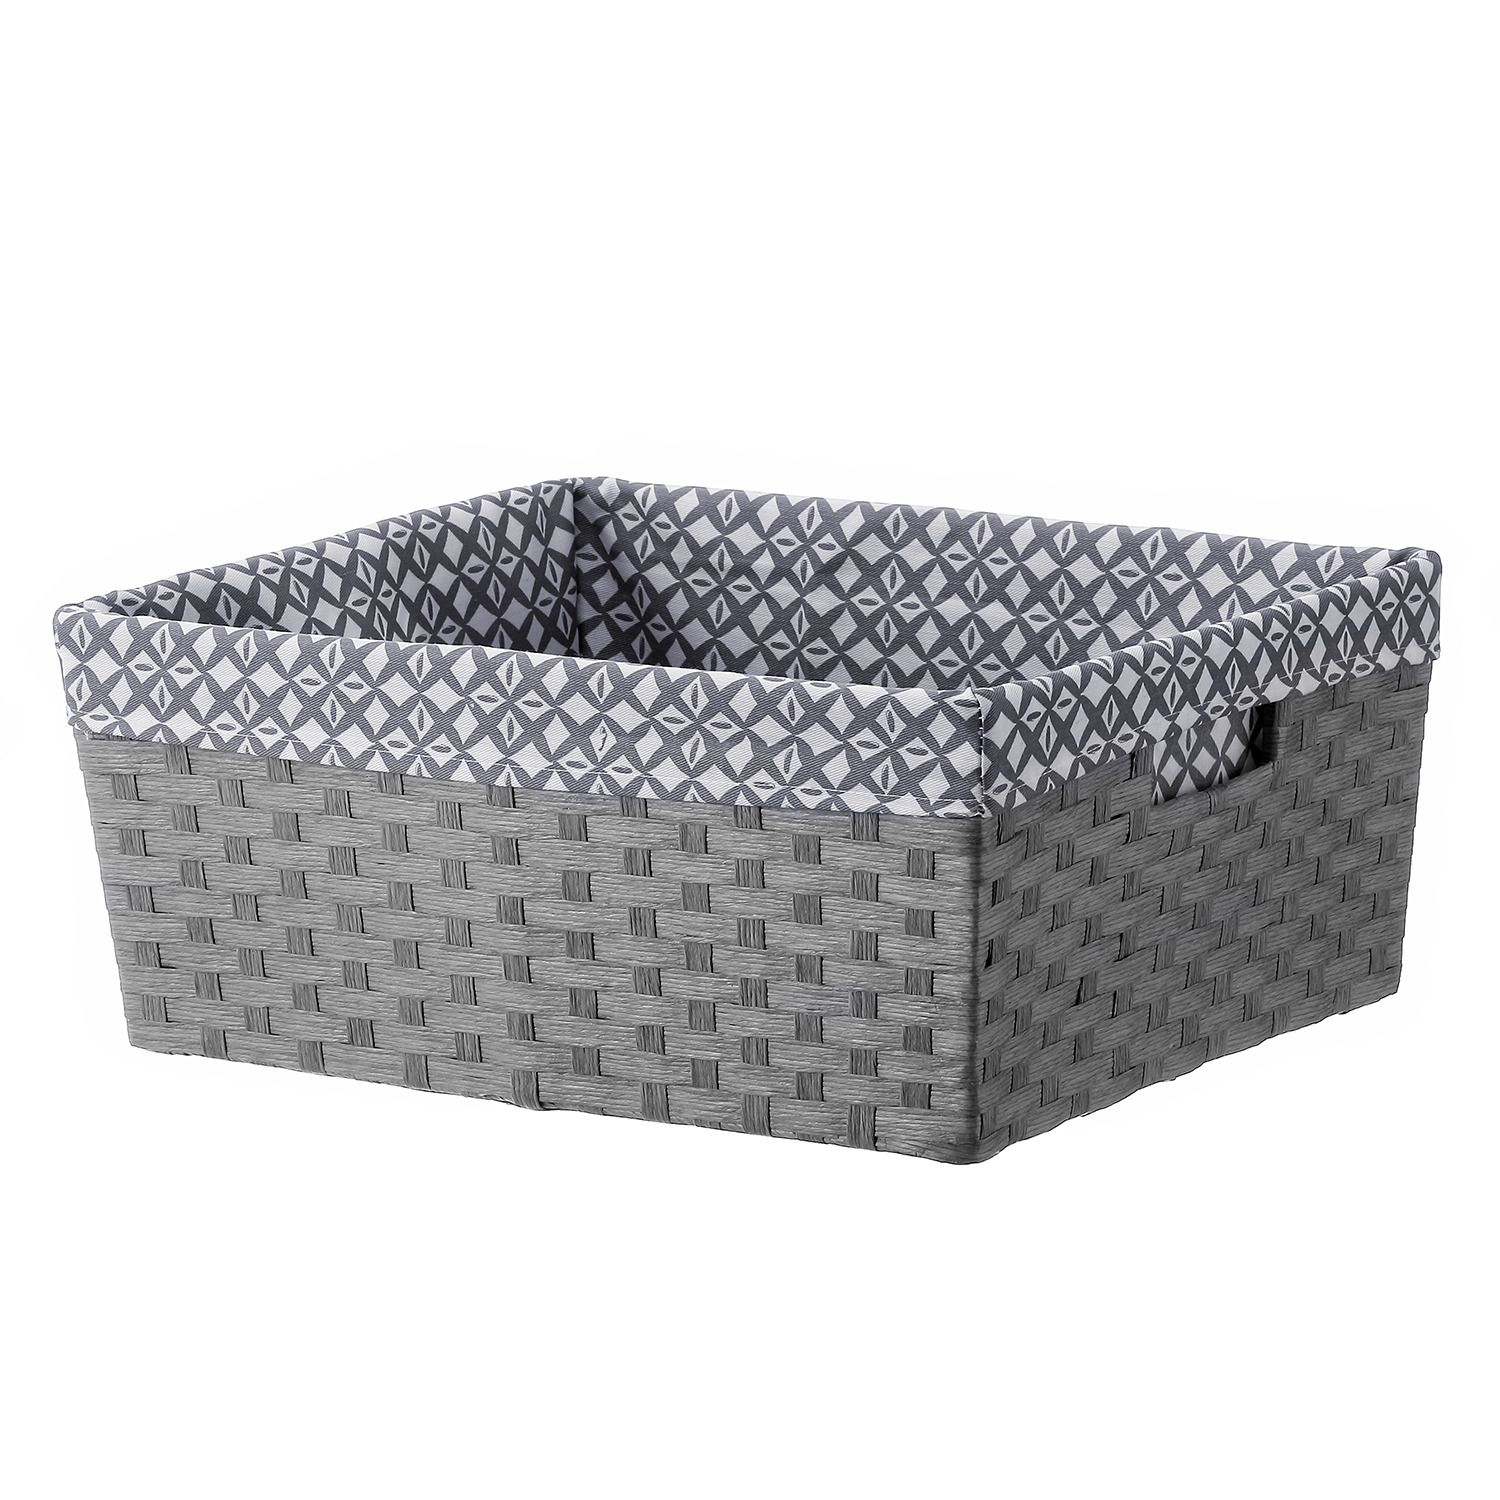 Basketville Storage Bin. Gray Aqua